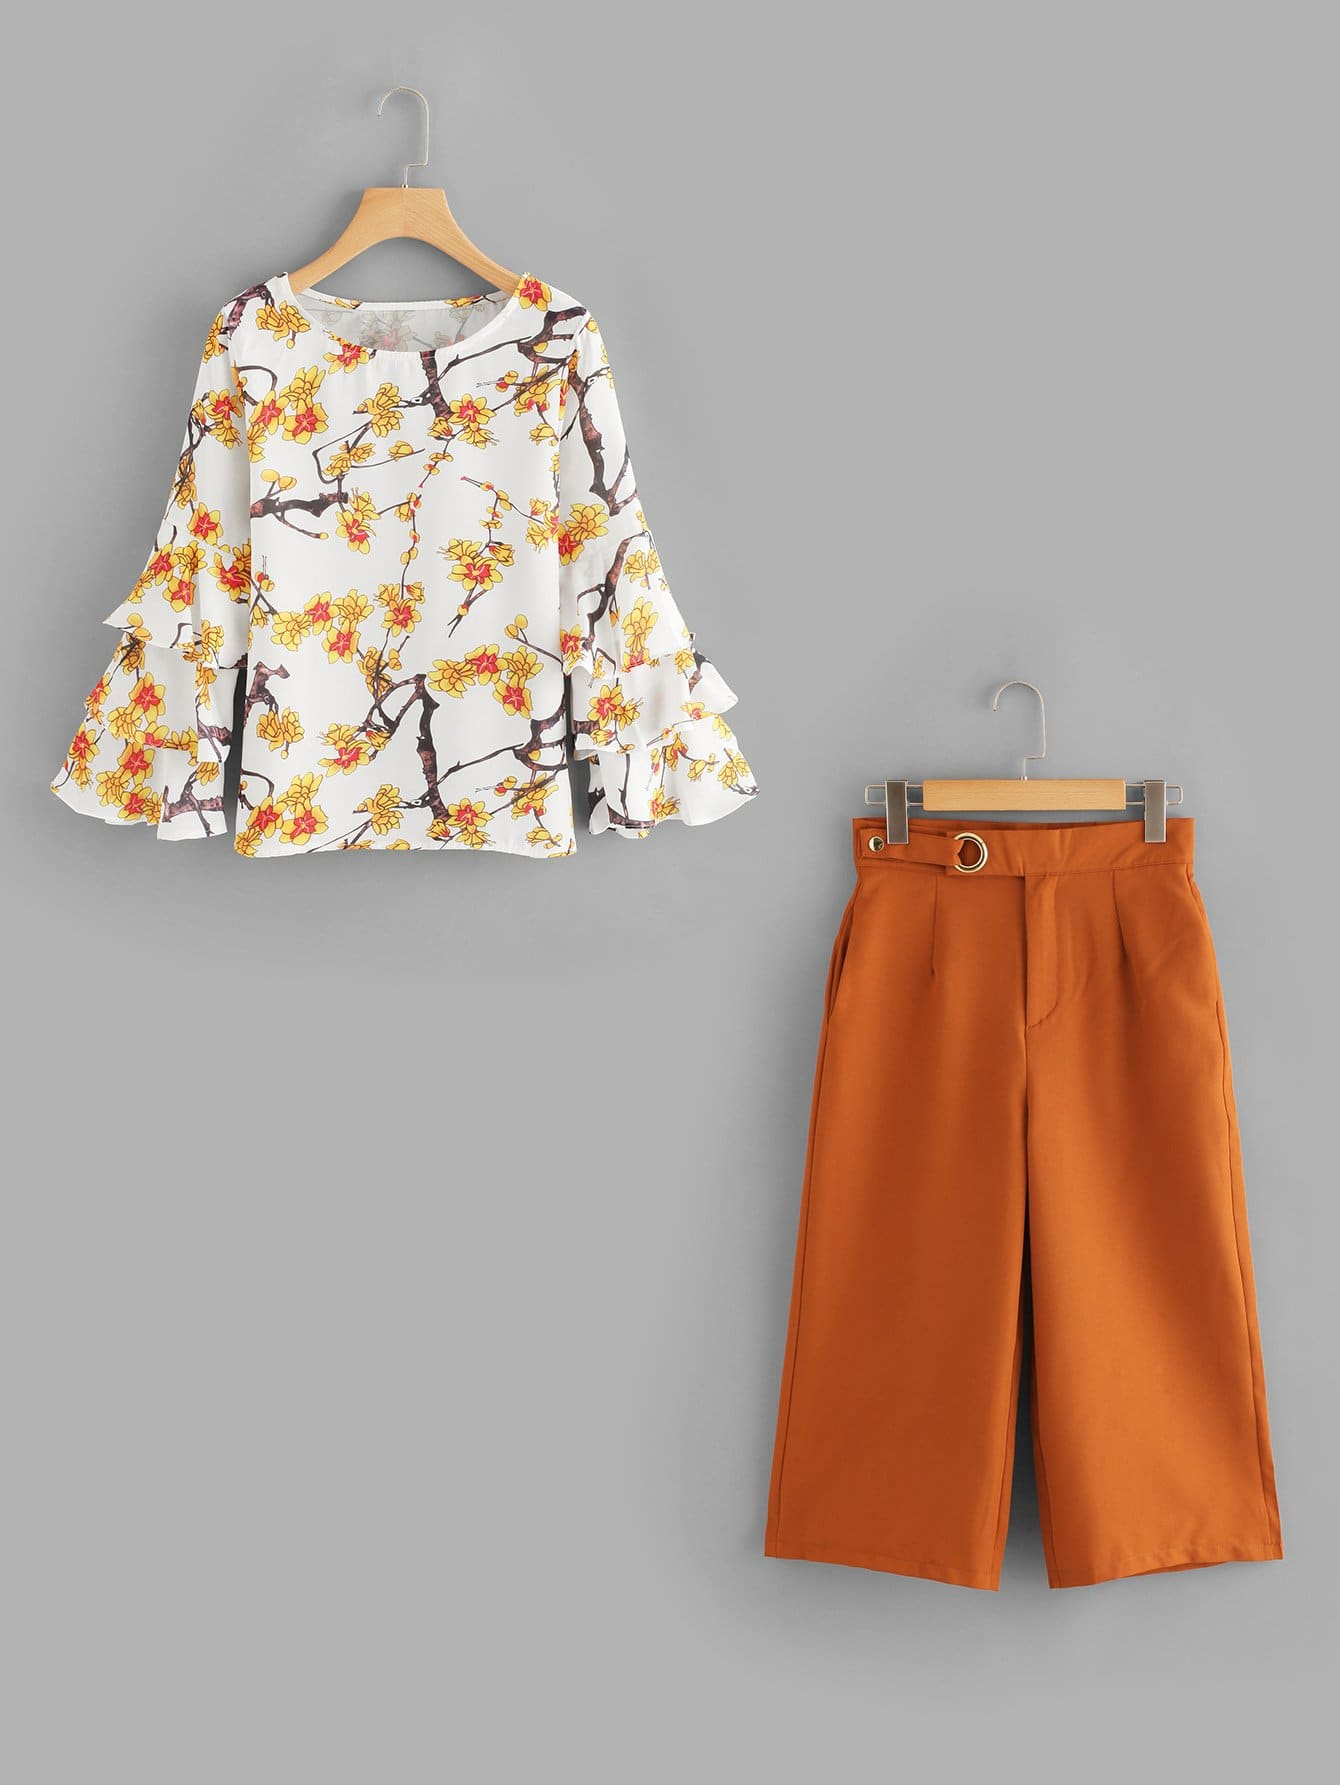 Layered Sleeve Floral Top & Wide Leg Pants wide sleeve color block floral top